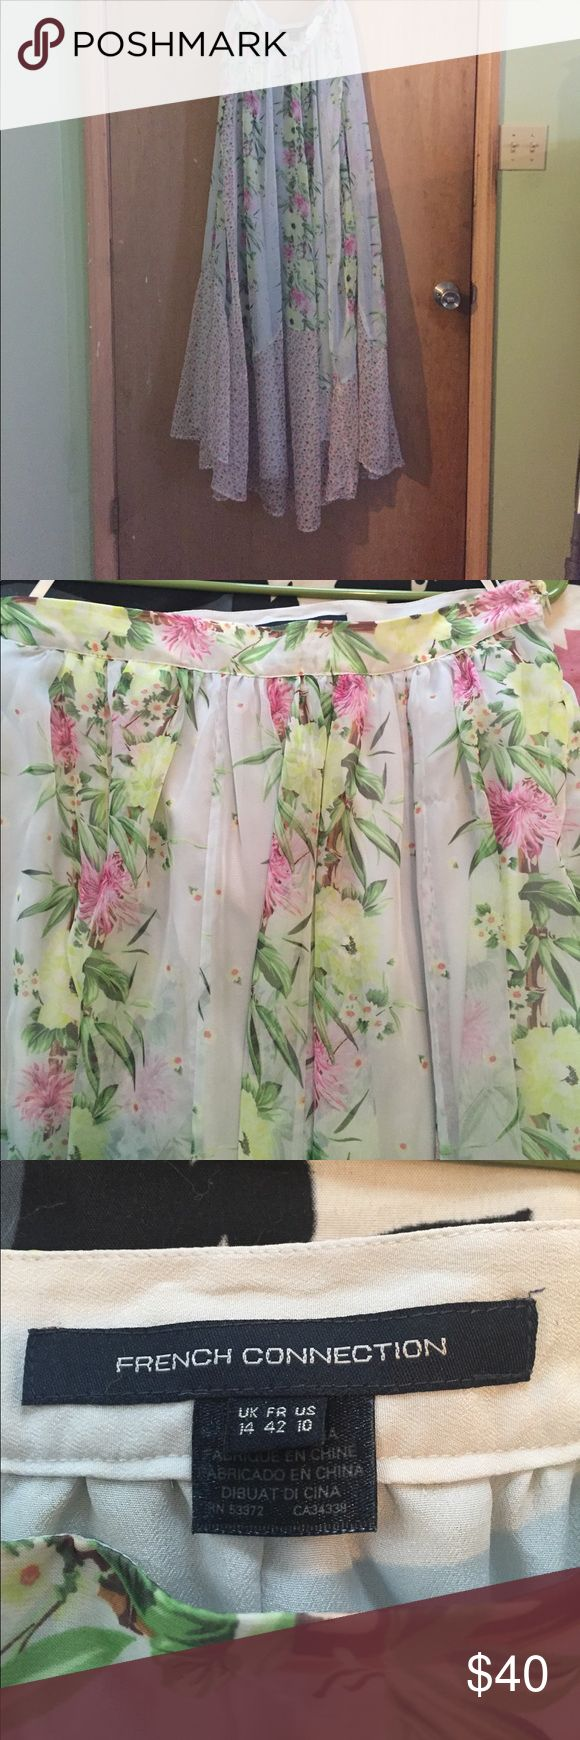 French Connection long maxi skirt Beautiful skirt, never worn.  Desert tropics a chiffon, fully lined in a pink and green floral pattern French Connection Skirts Maxi